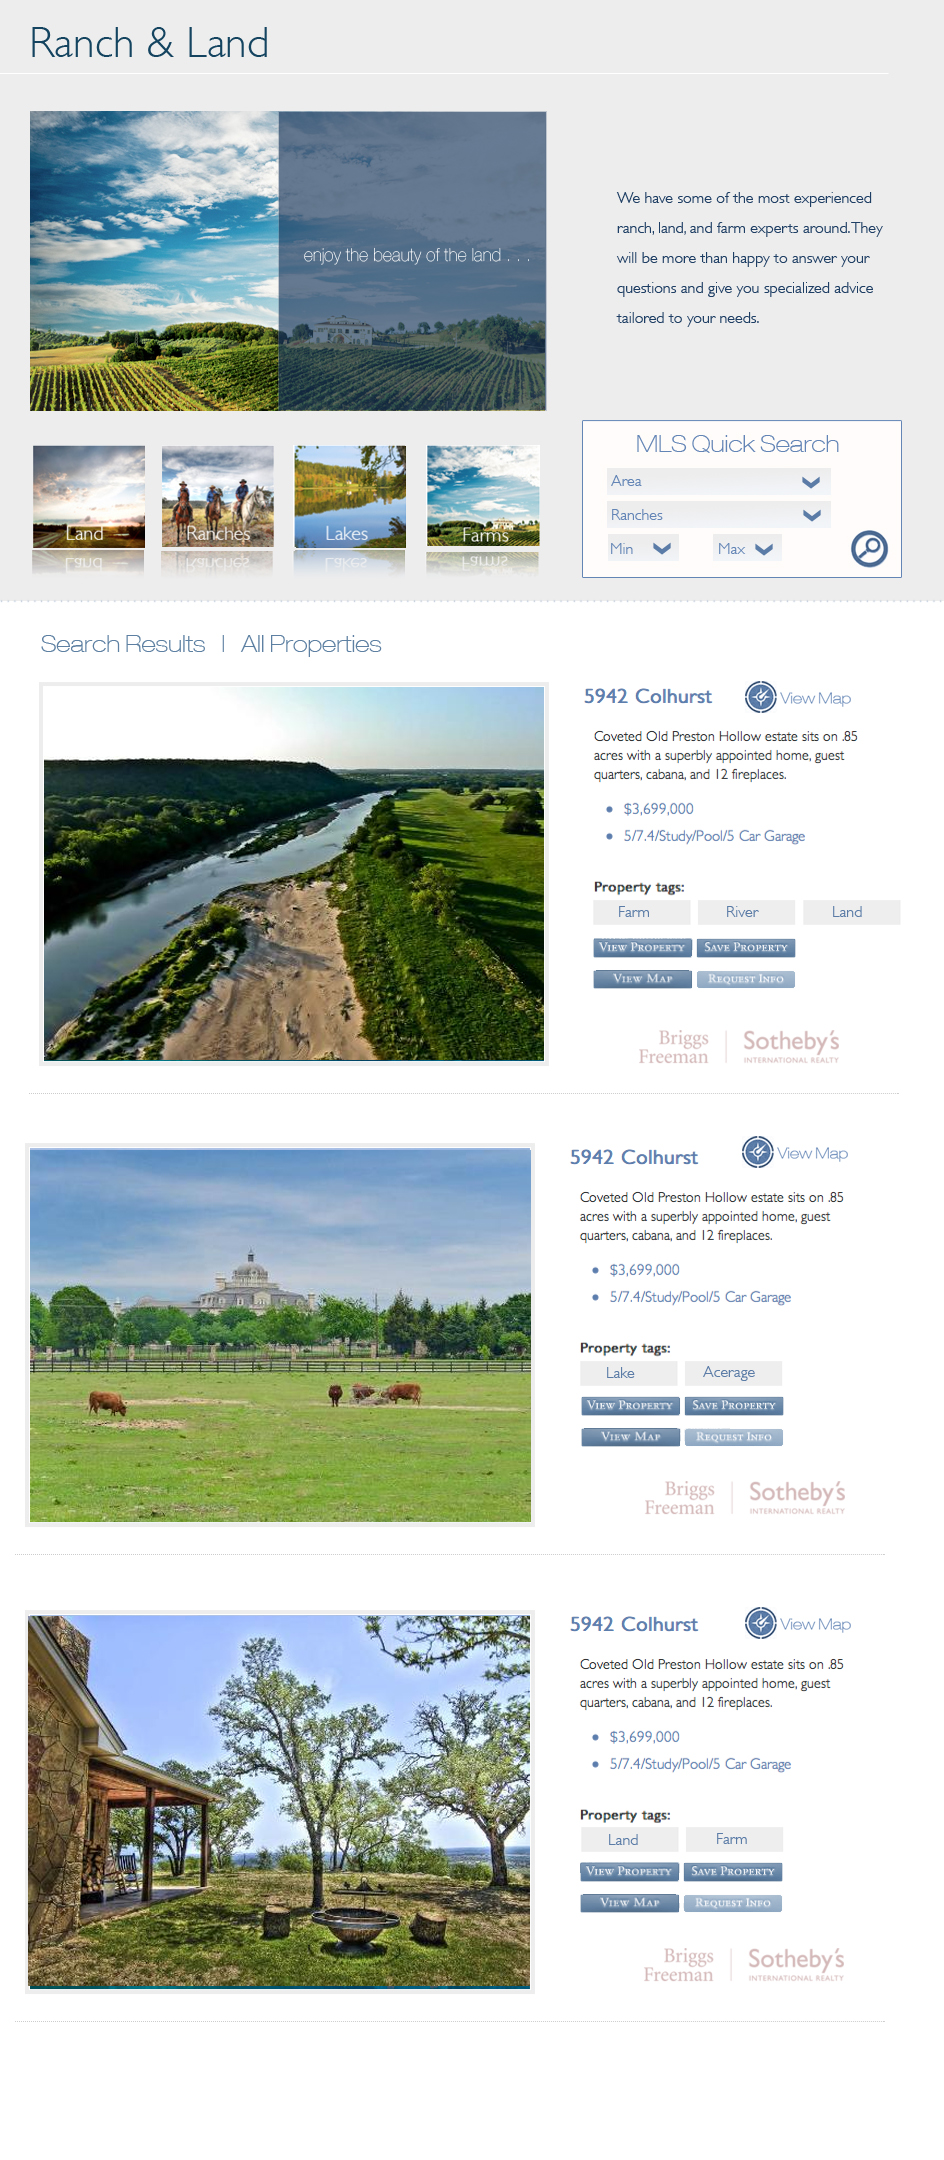 Ranch and Land Website Design